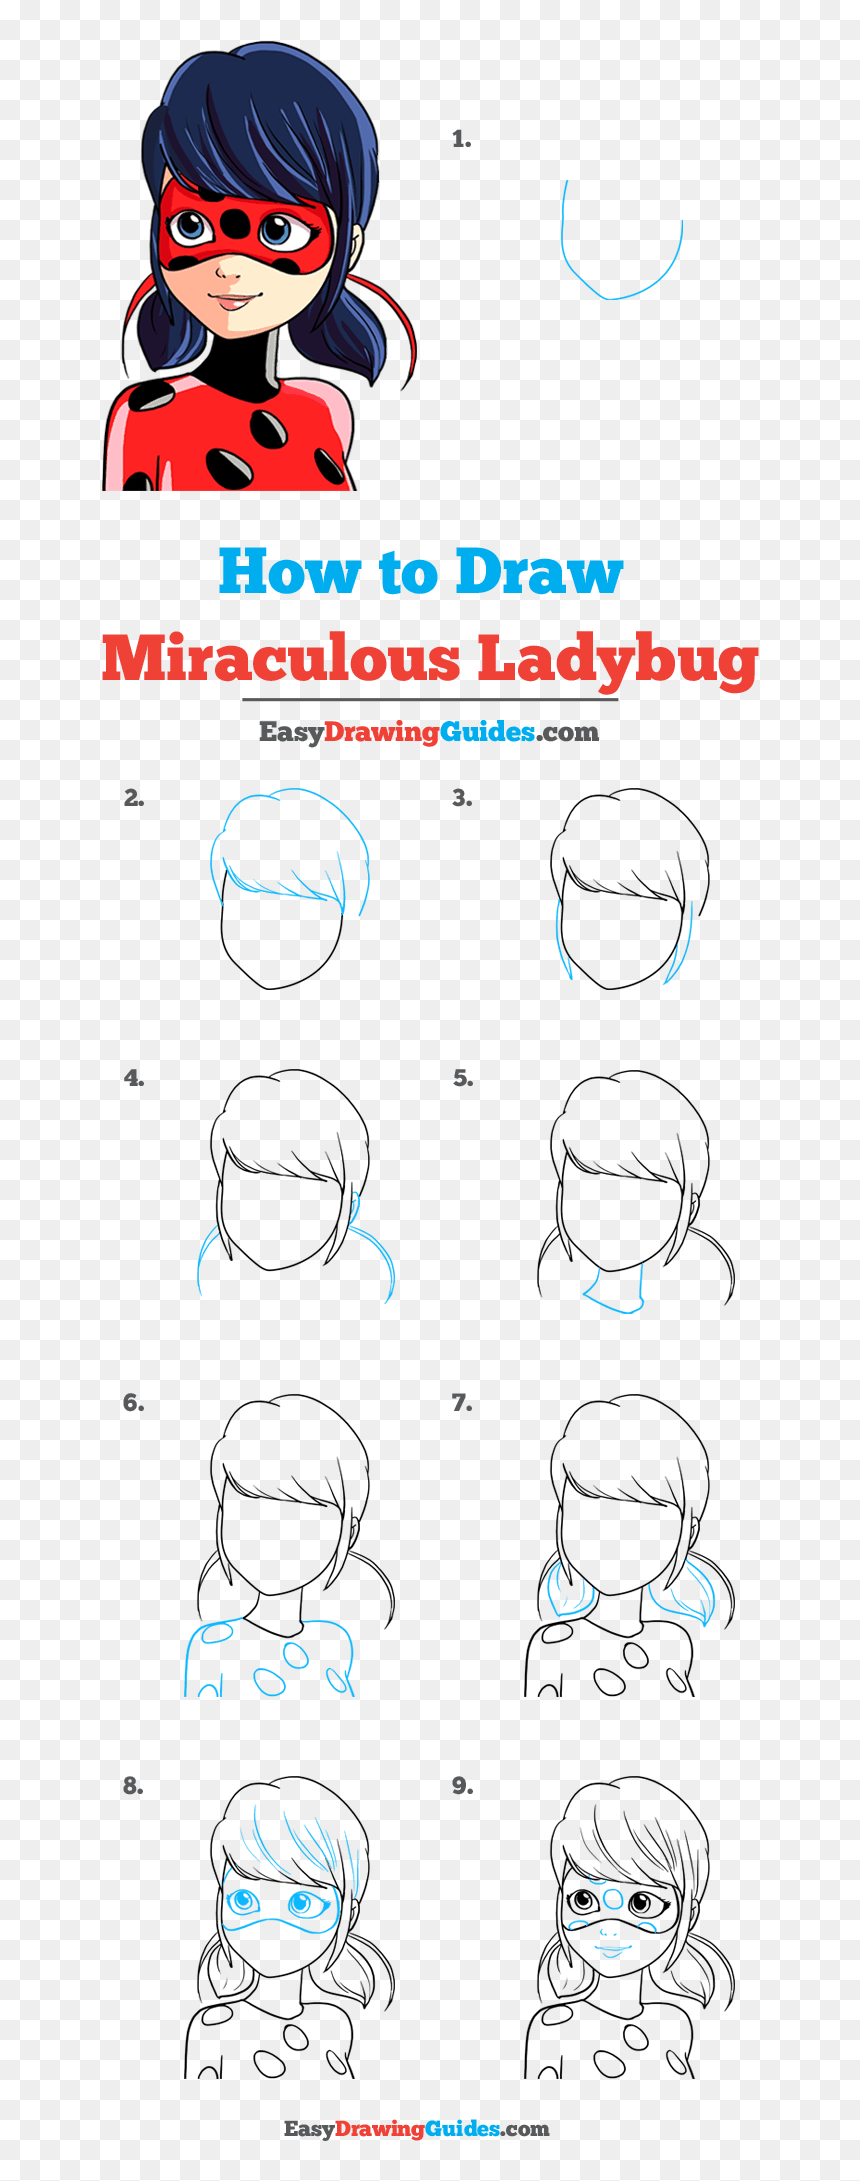 How To Draw Miraculous Ladybug Step By Step How To Draw Bonnie Hd Png Download Vhv